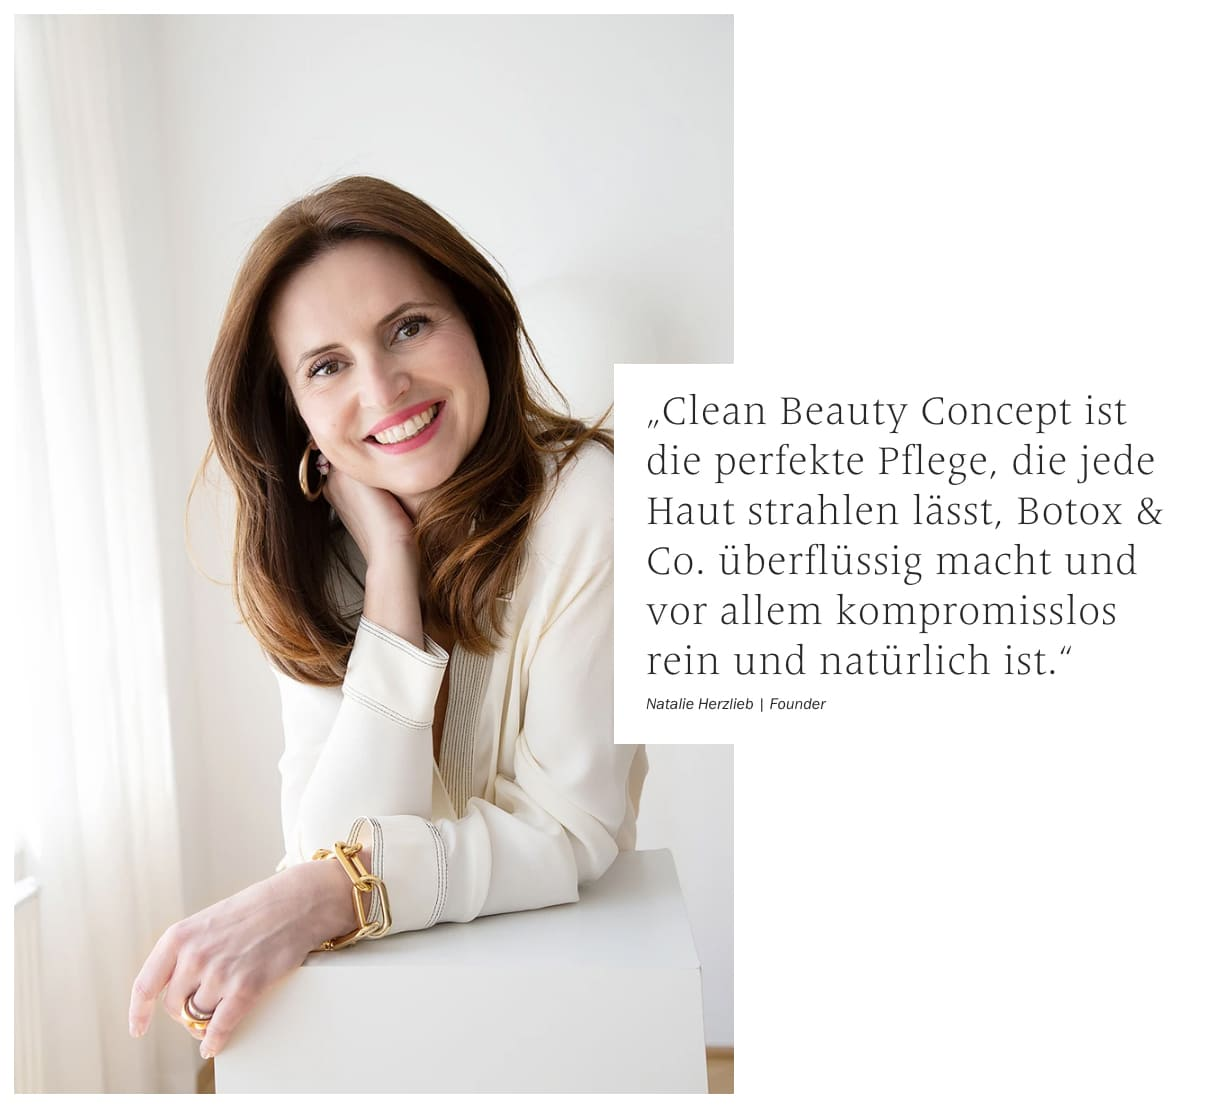 Clean Beauty Founder